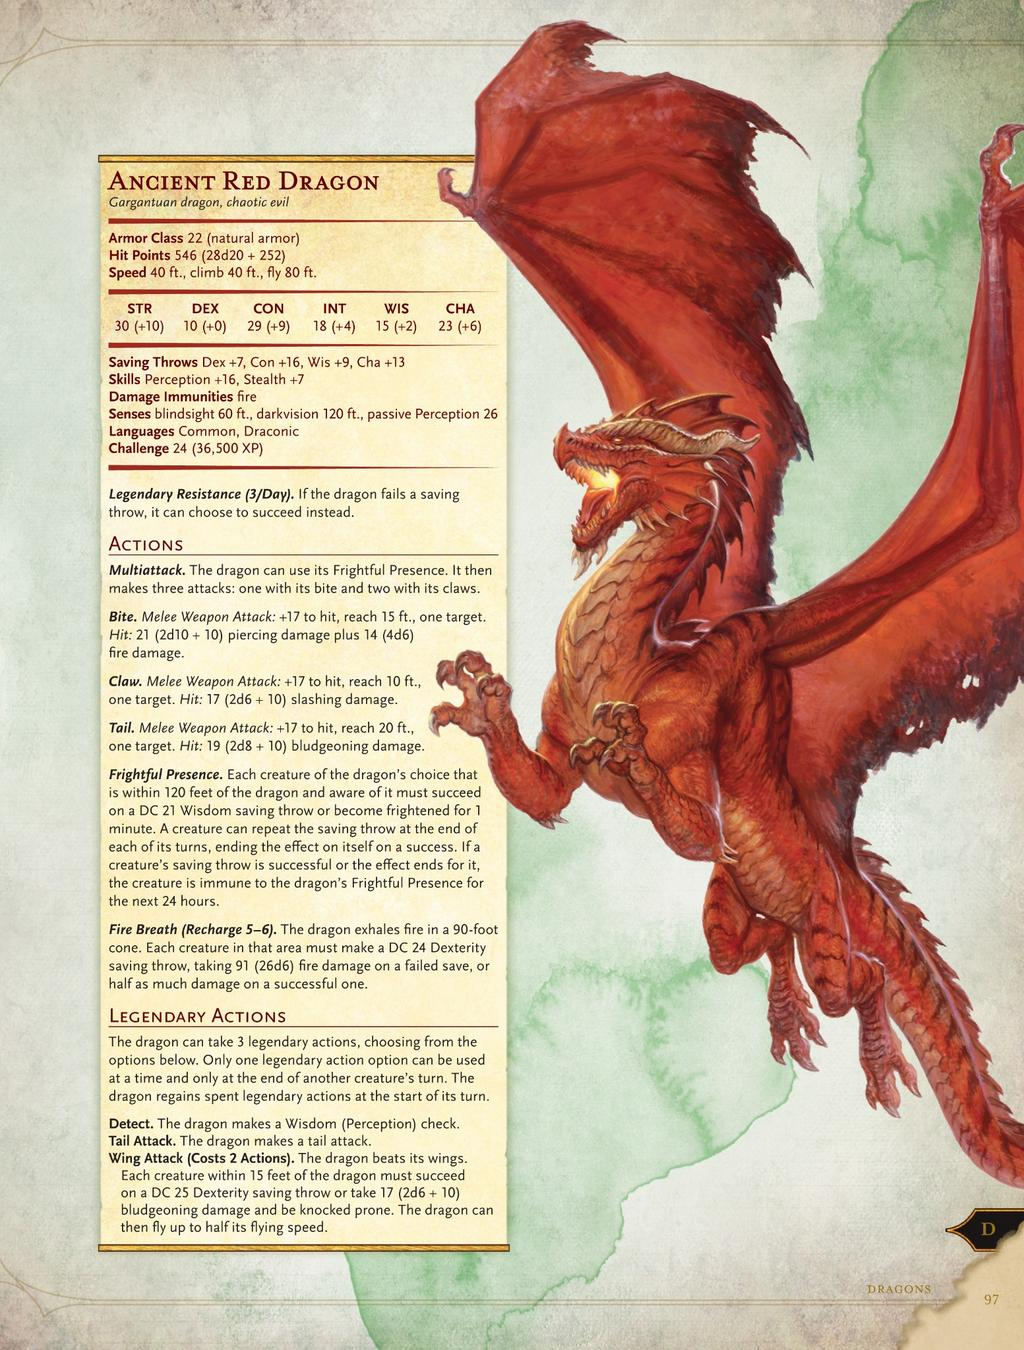 dungeons and dragons monster manual pdf 4e